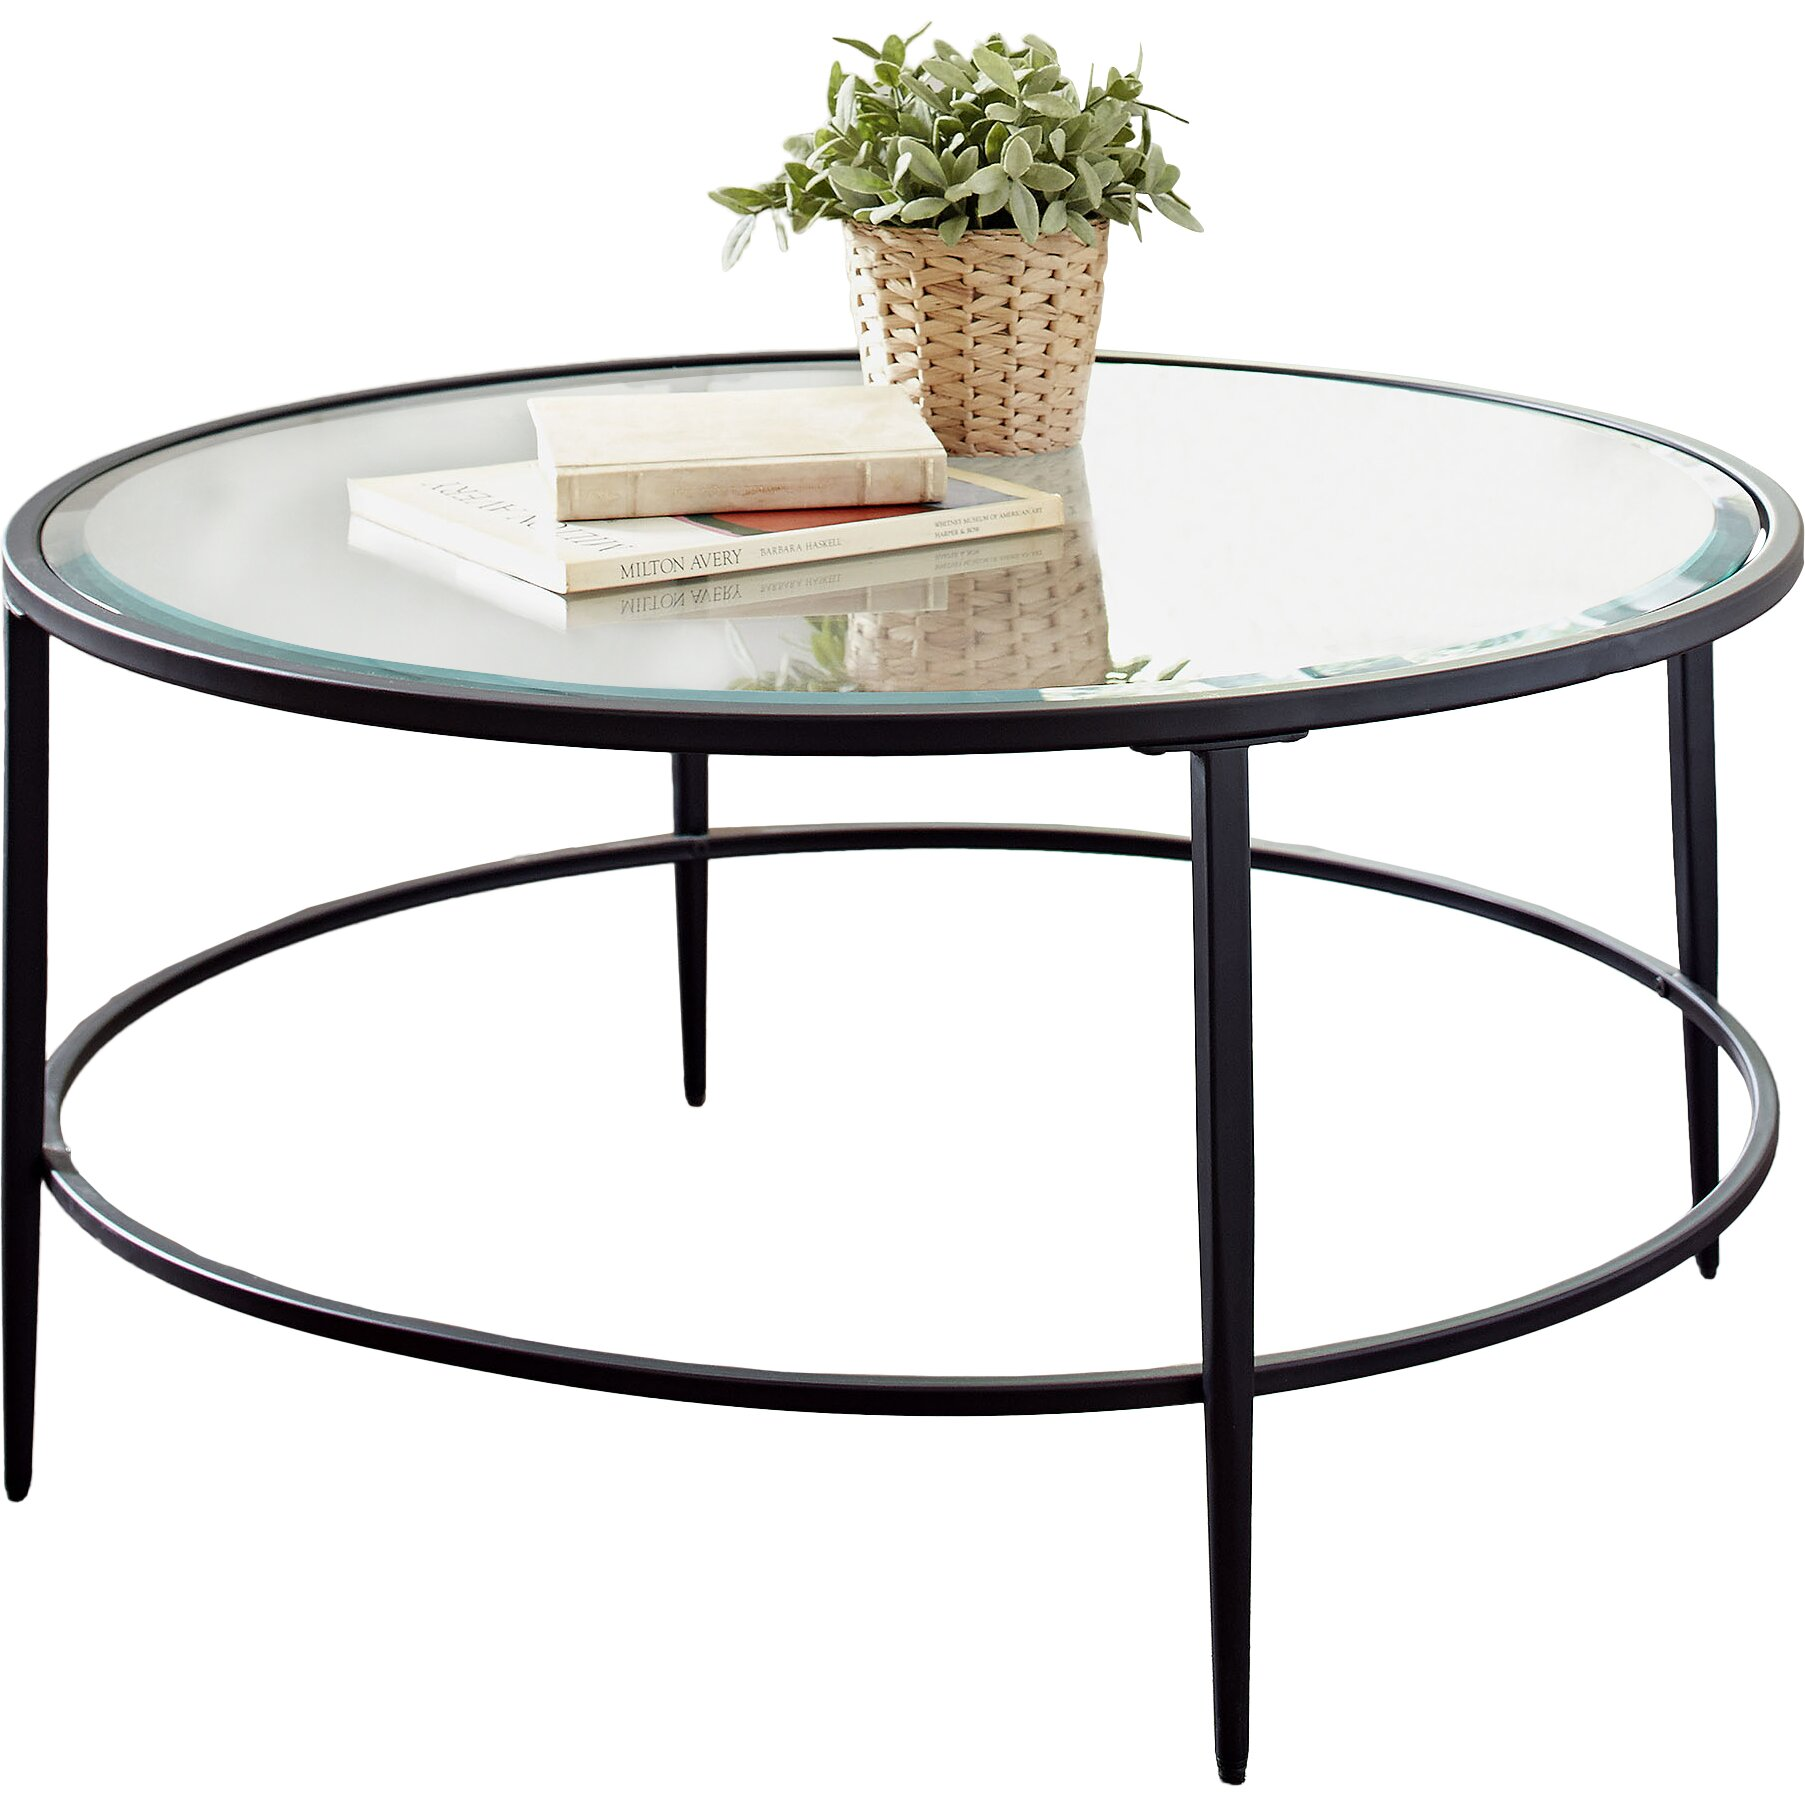 Round Coffee Table: Birch Lane Harlan Round Coffee Table & Reviews